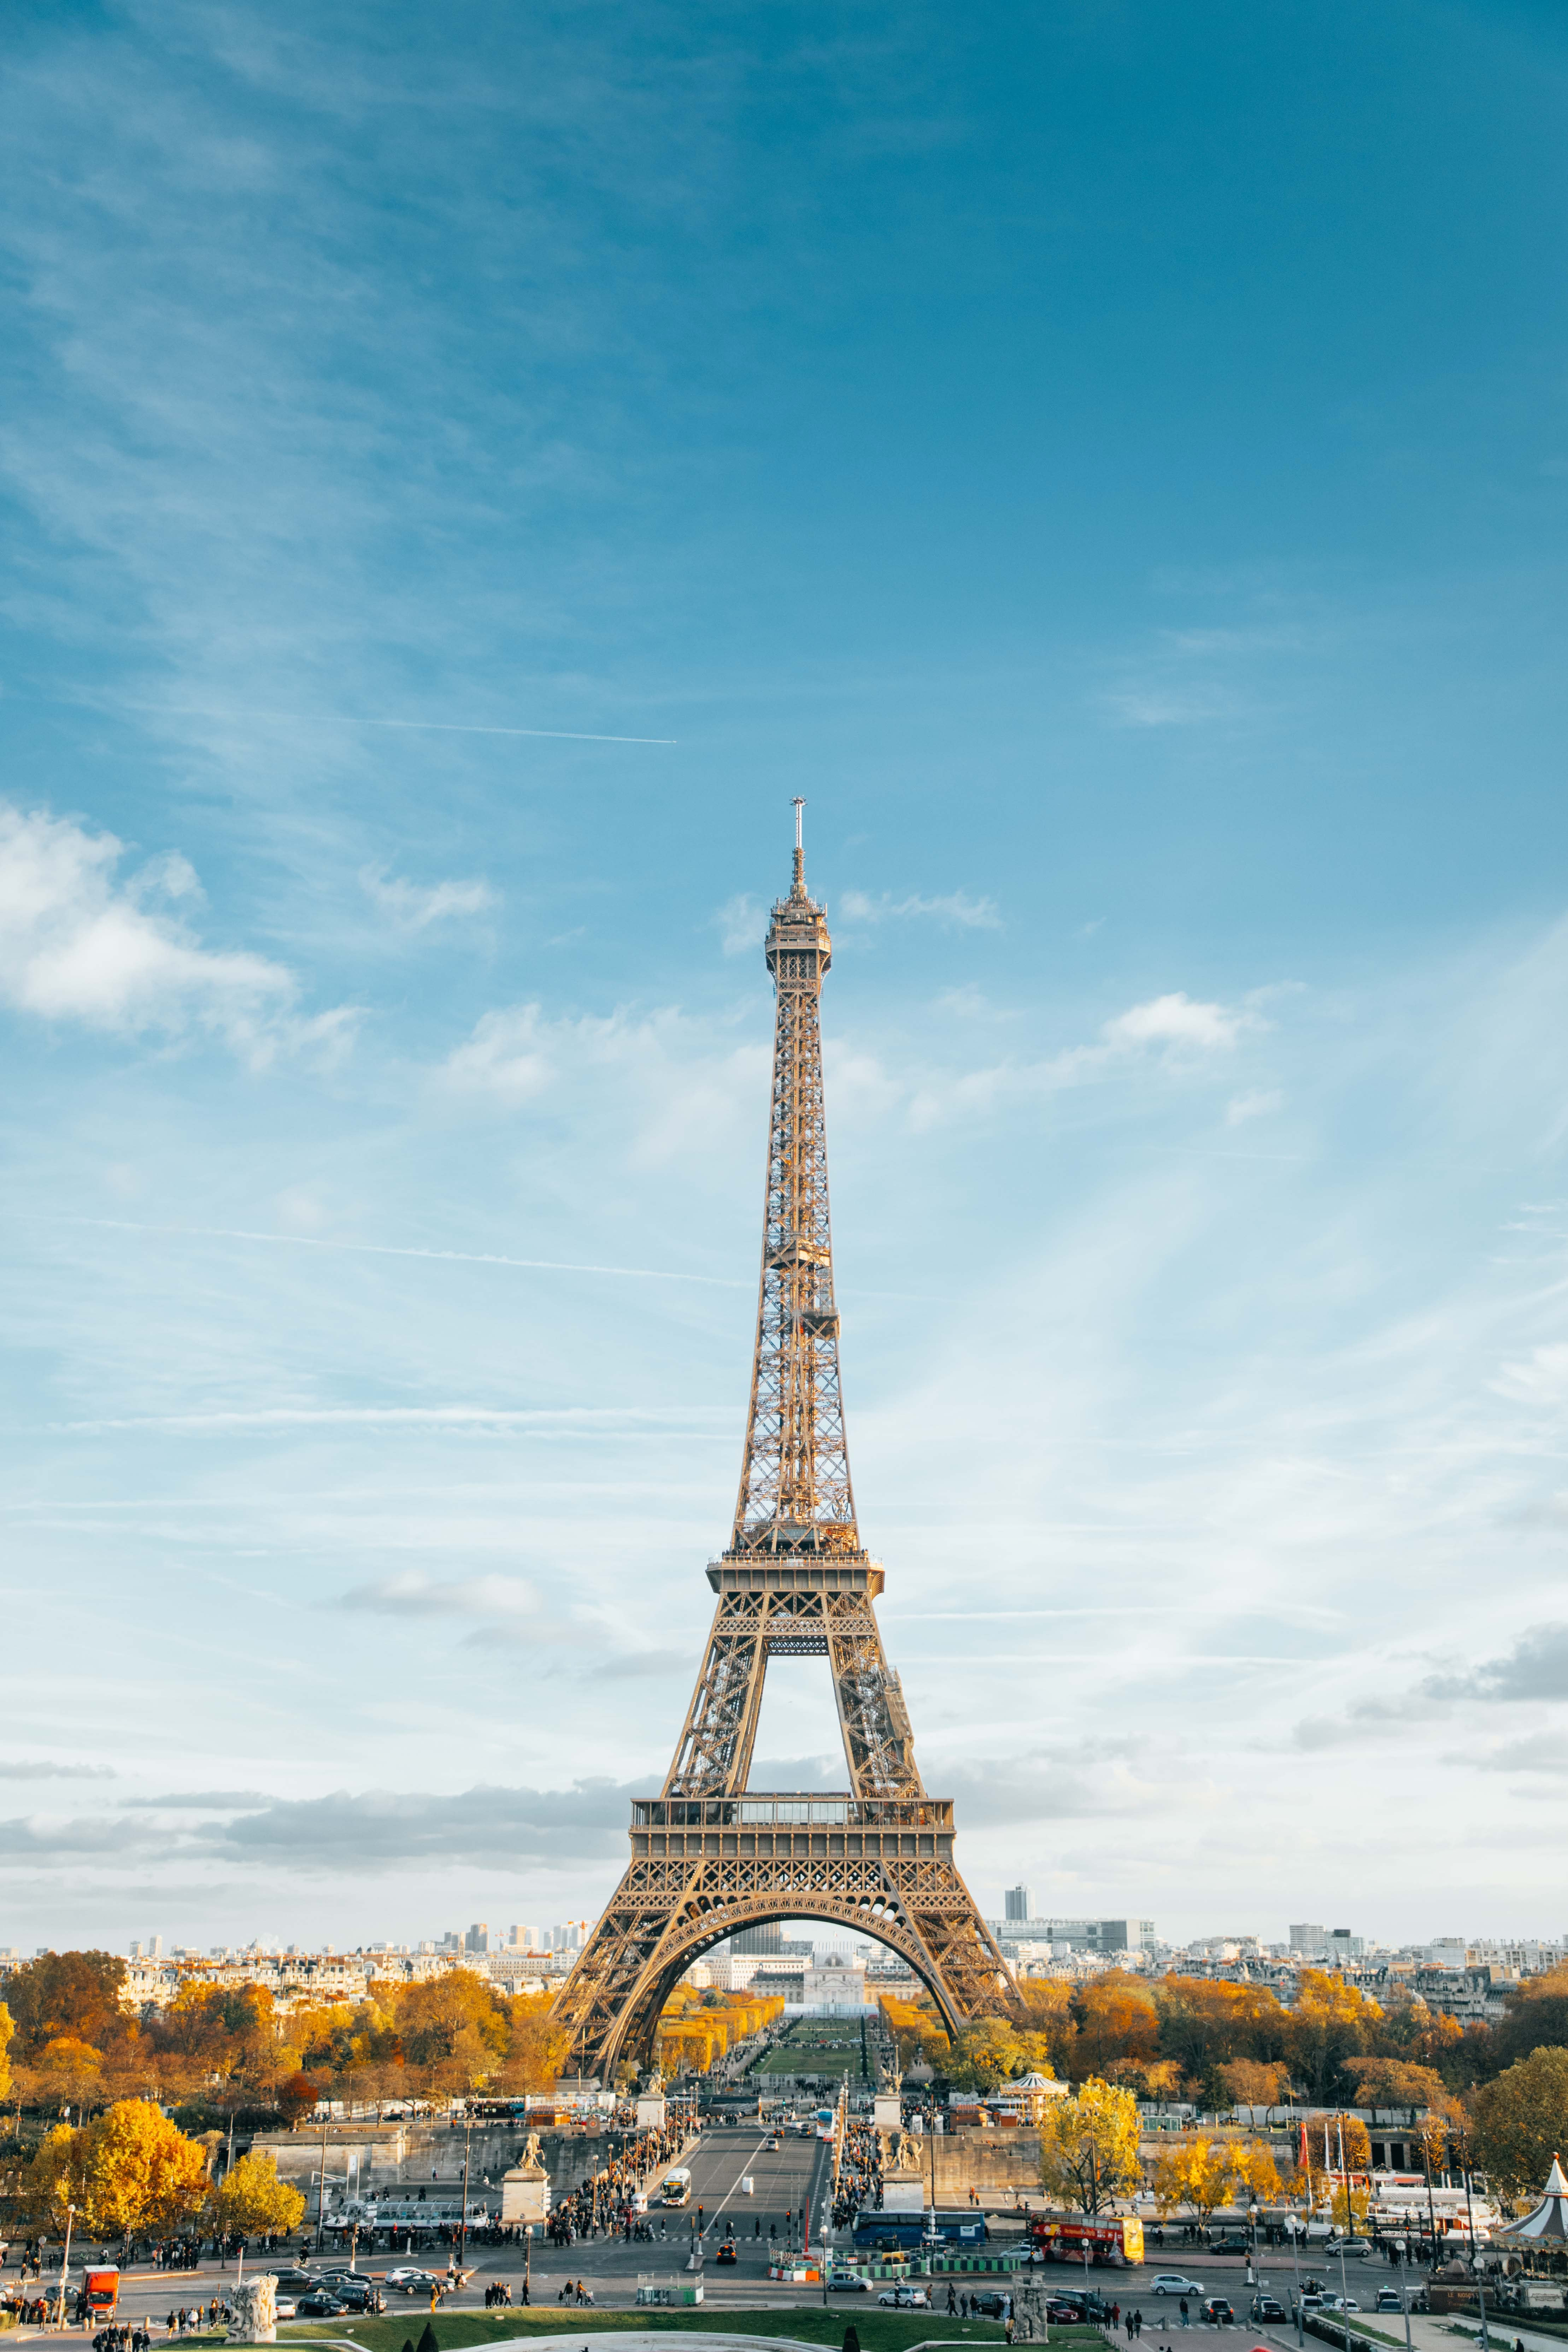 Eiffel tower during daytime